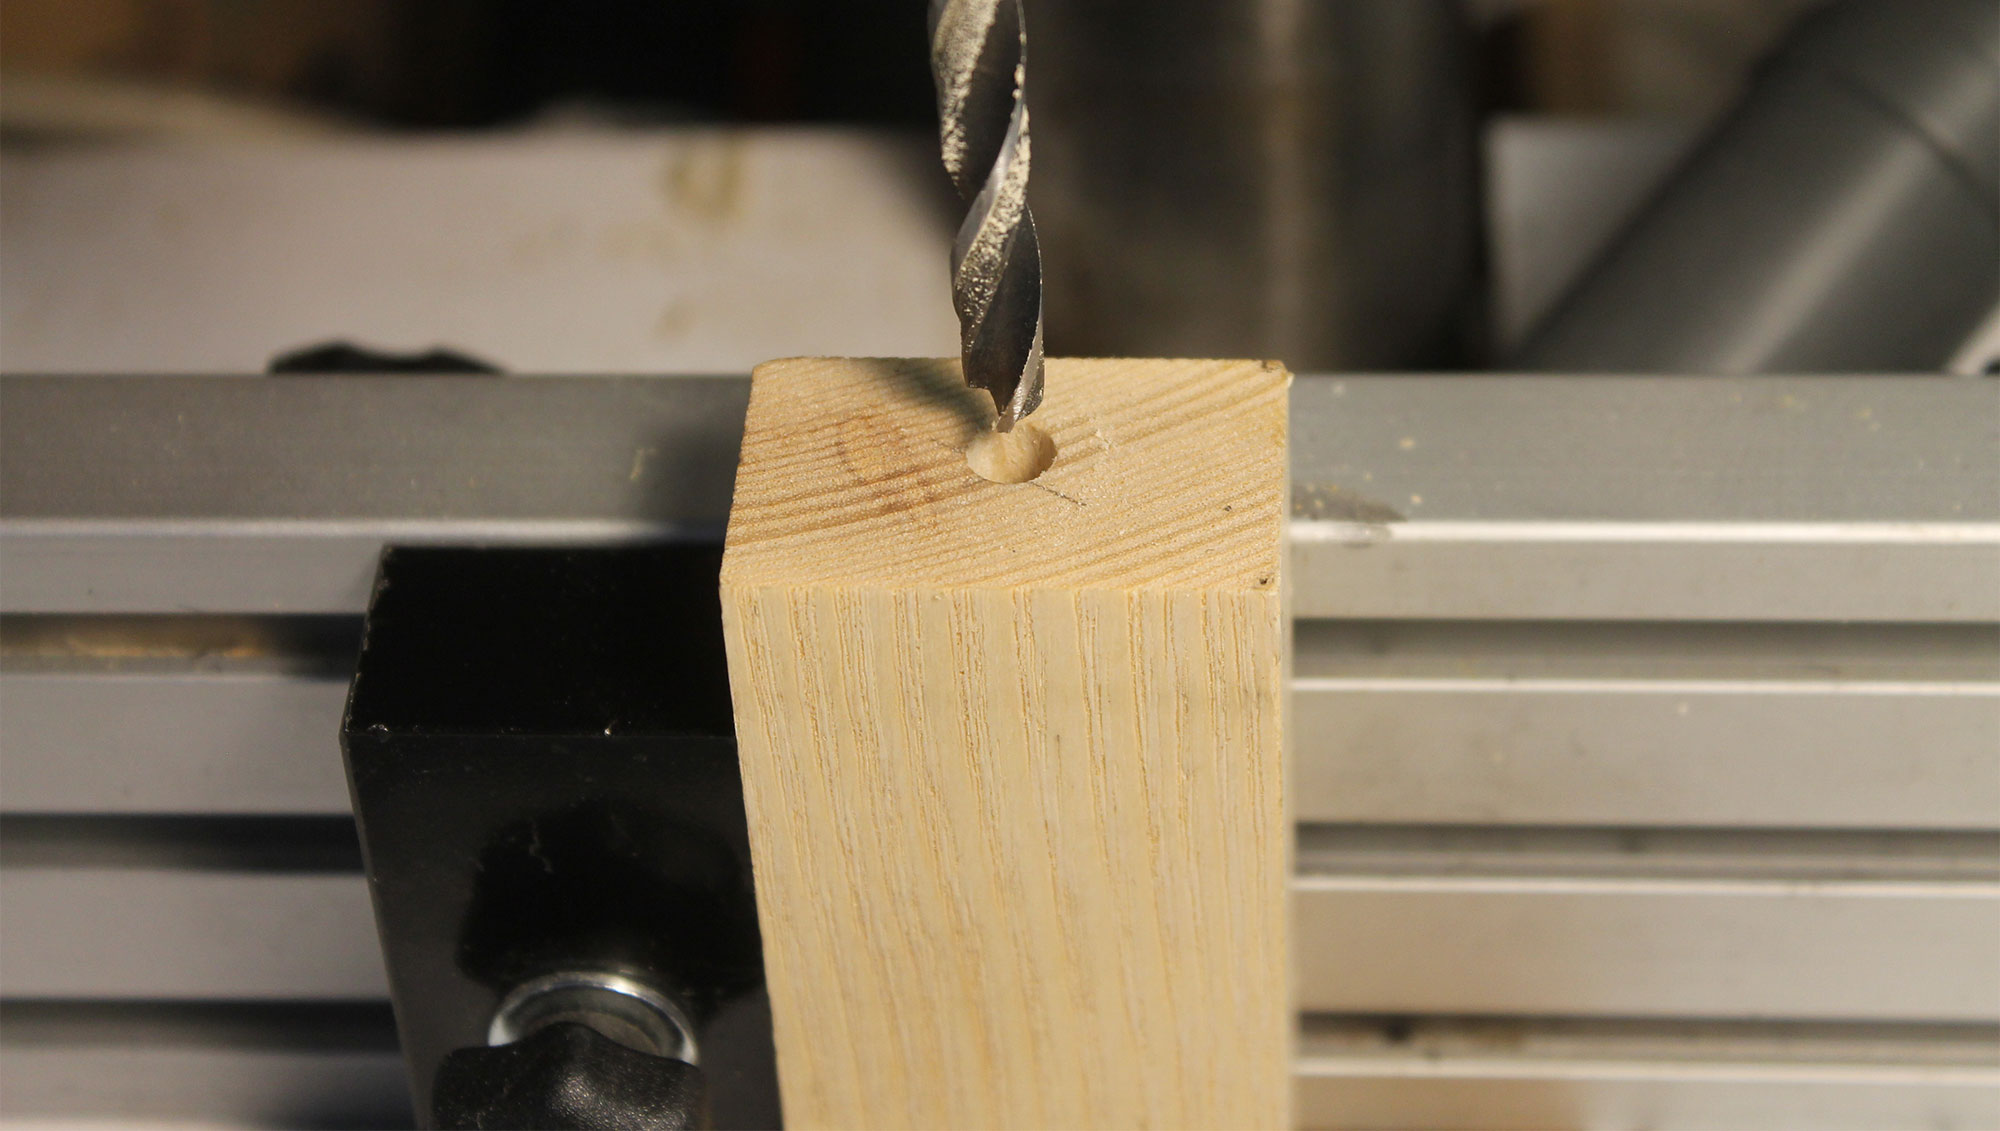 The off-center clamping block.